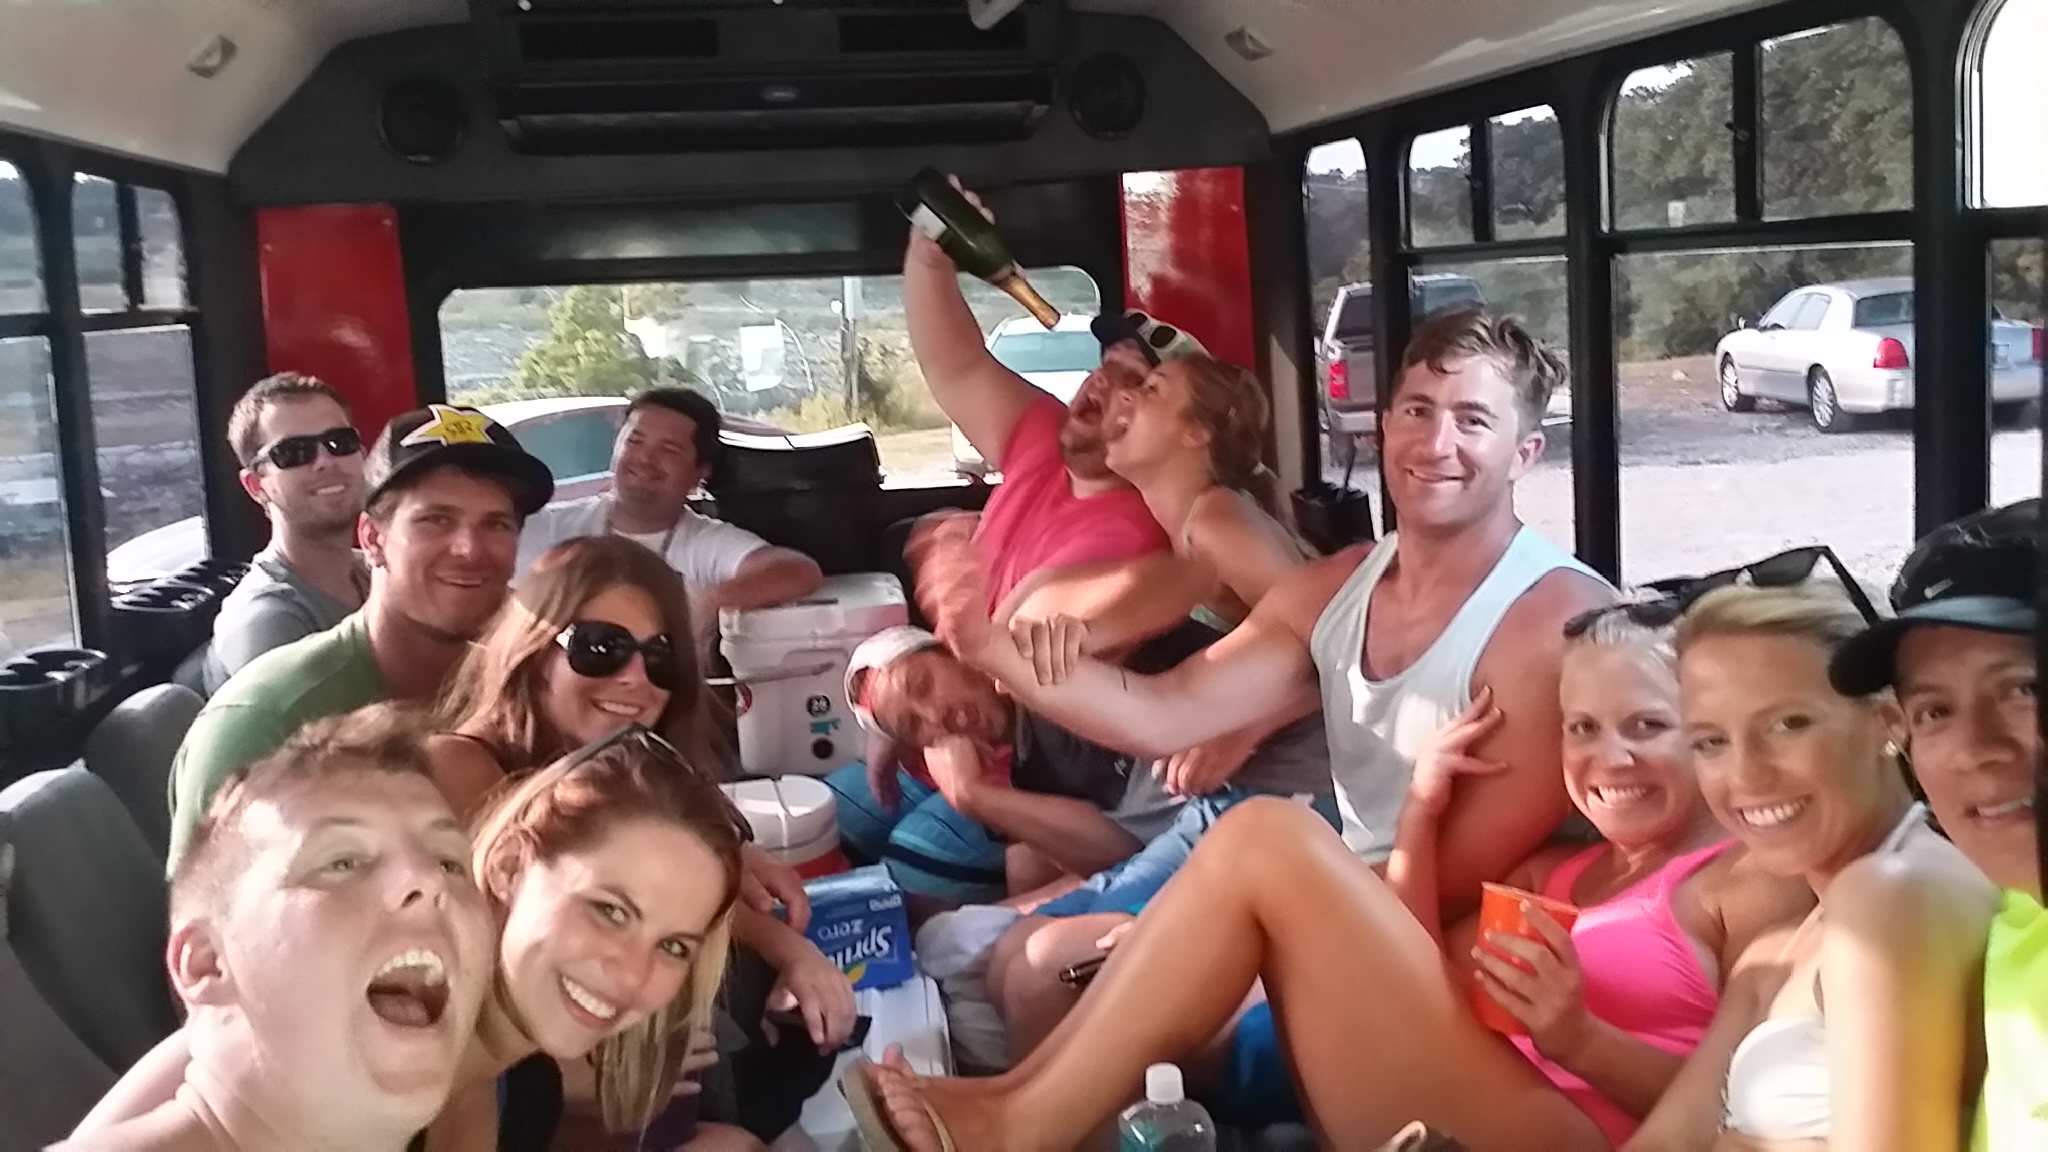 Austin Party Shuttle goes to Aquaholics